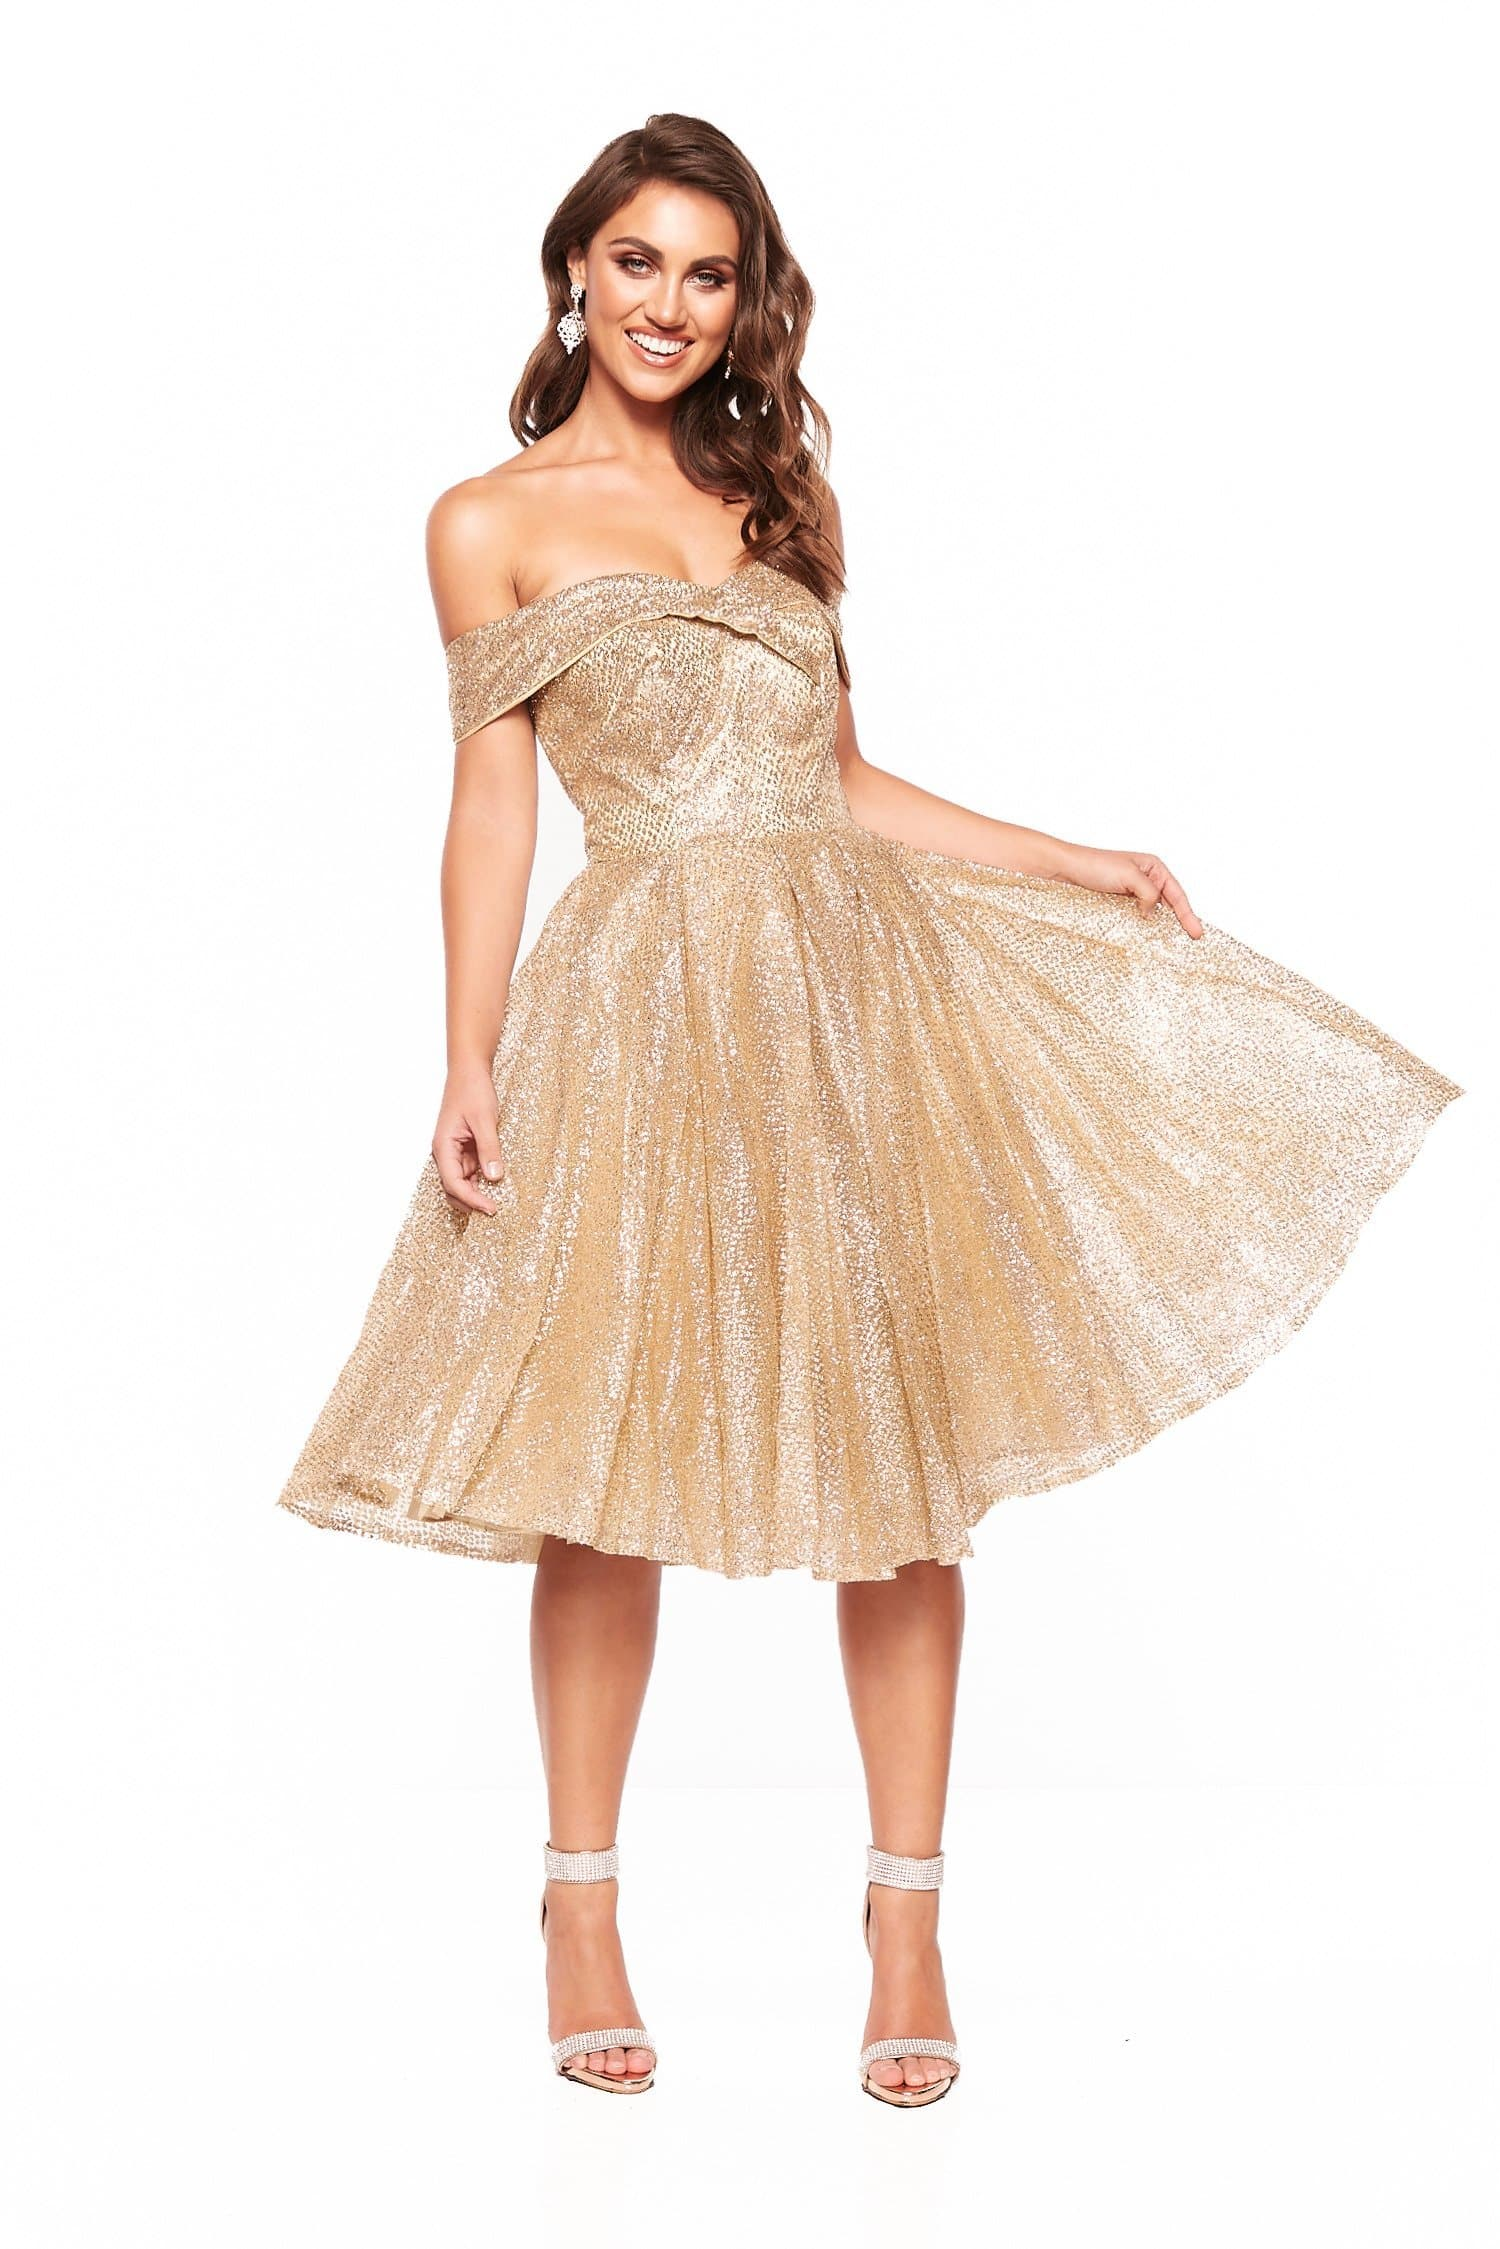 A&N Nyla Glitter Cocktail Off Shoulder Midi Dress - Gold